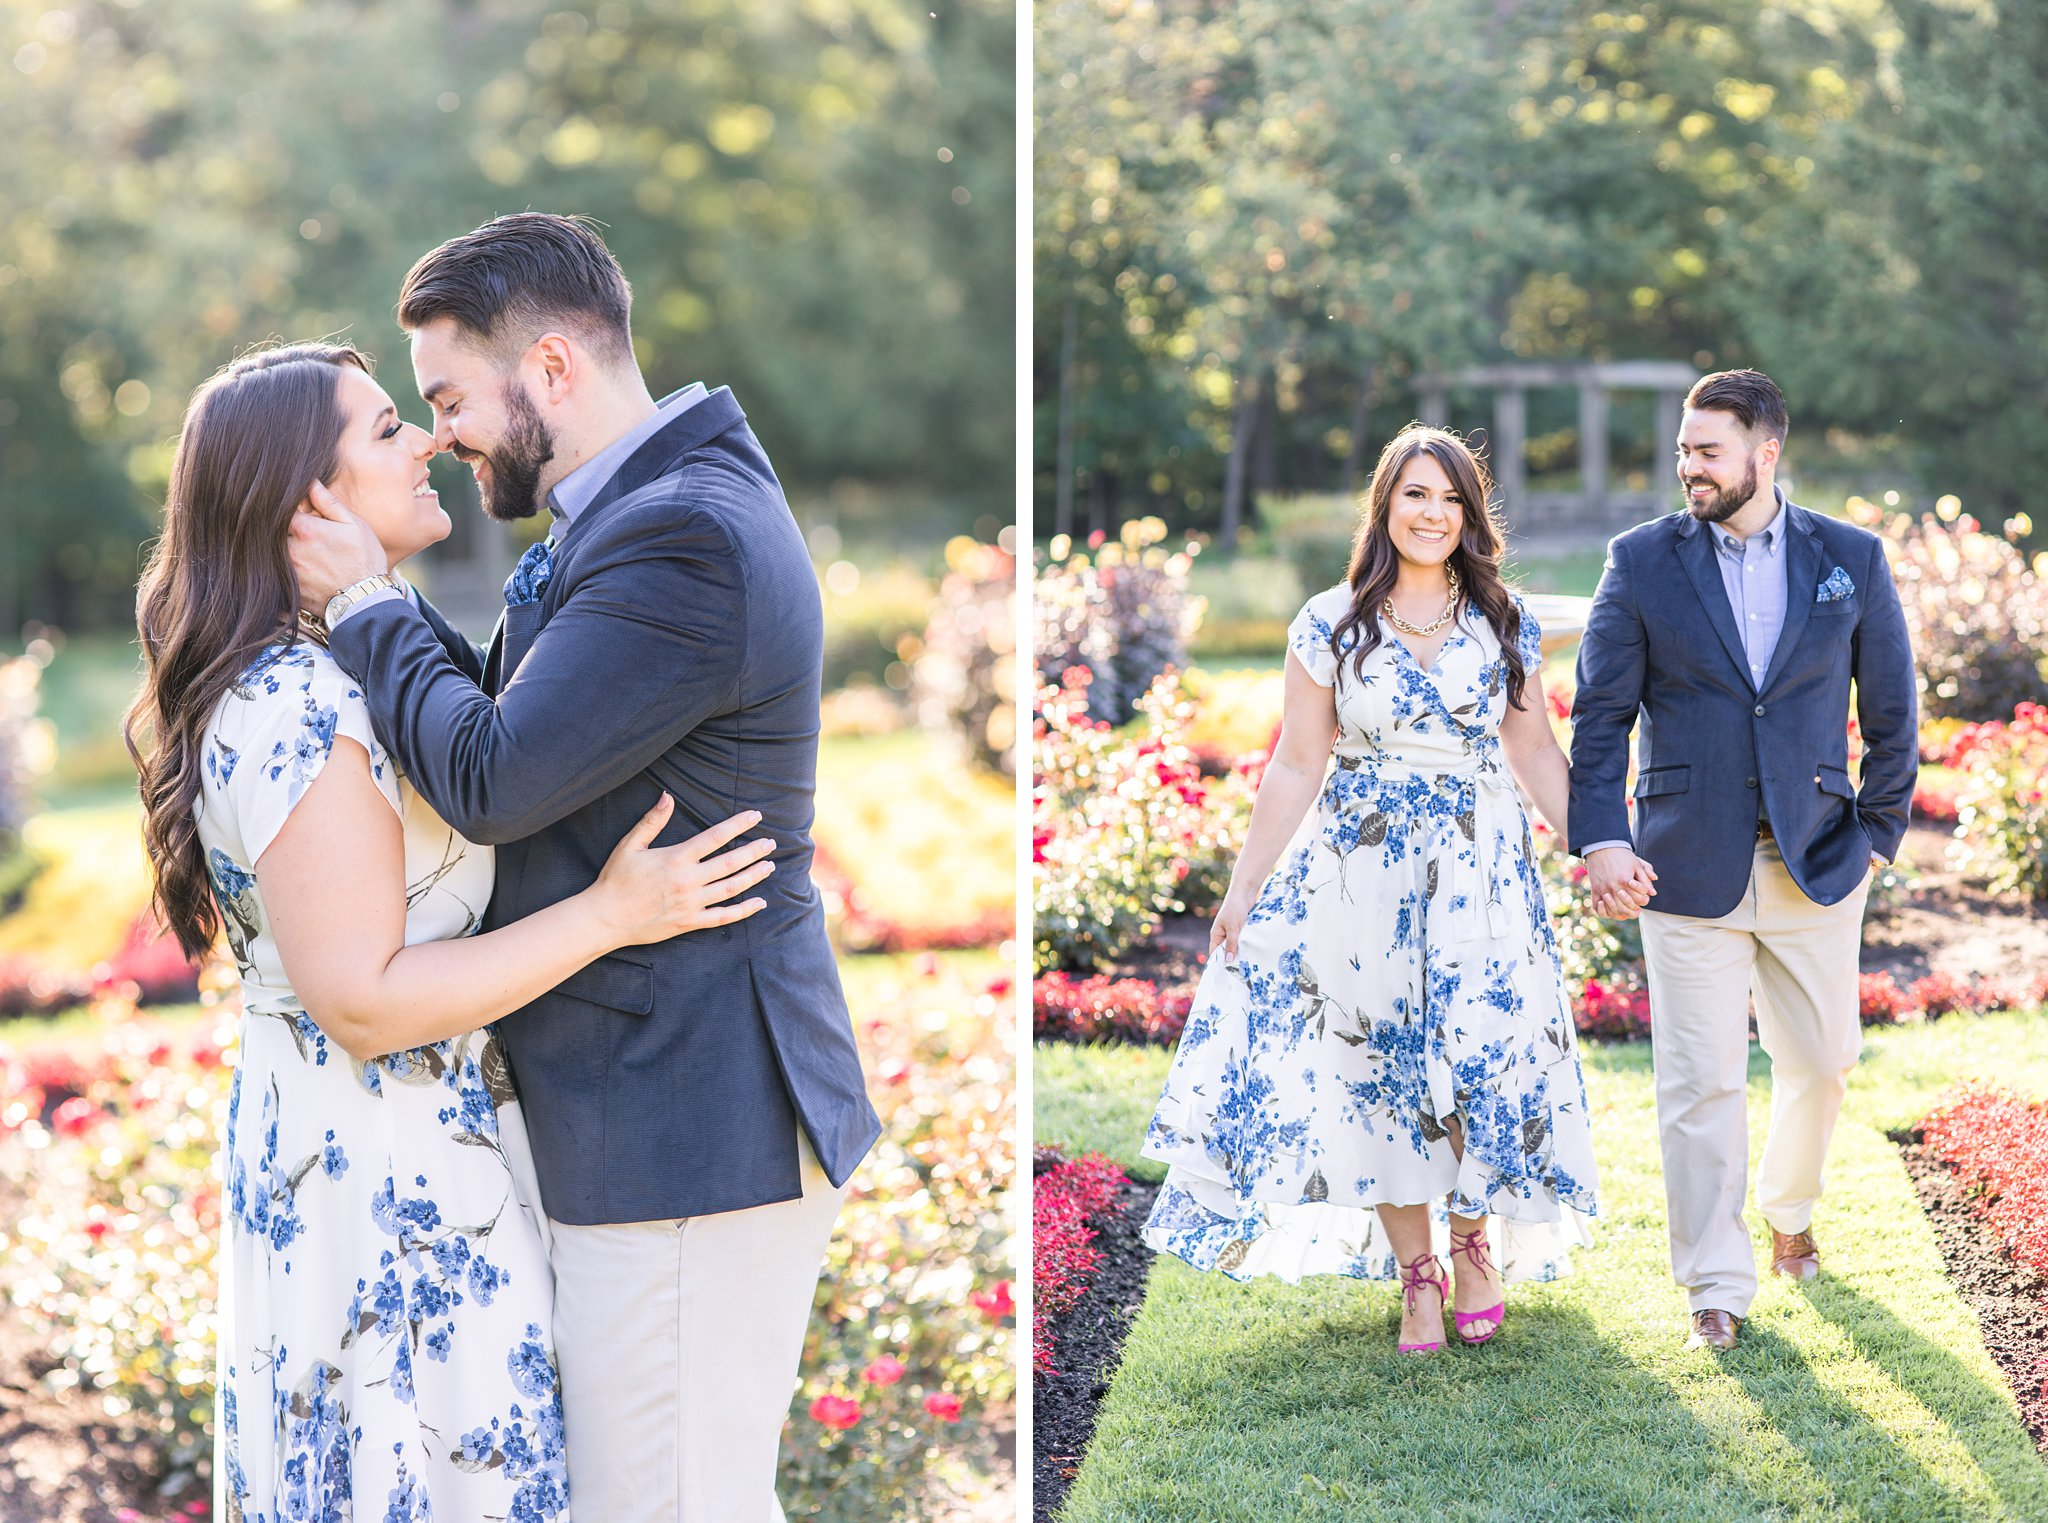 French gardens of Mackenzie King Estate Engagement Photos by Amy Pinder Photography